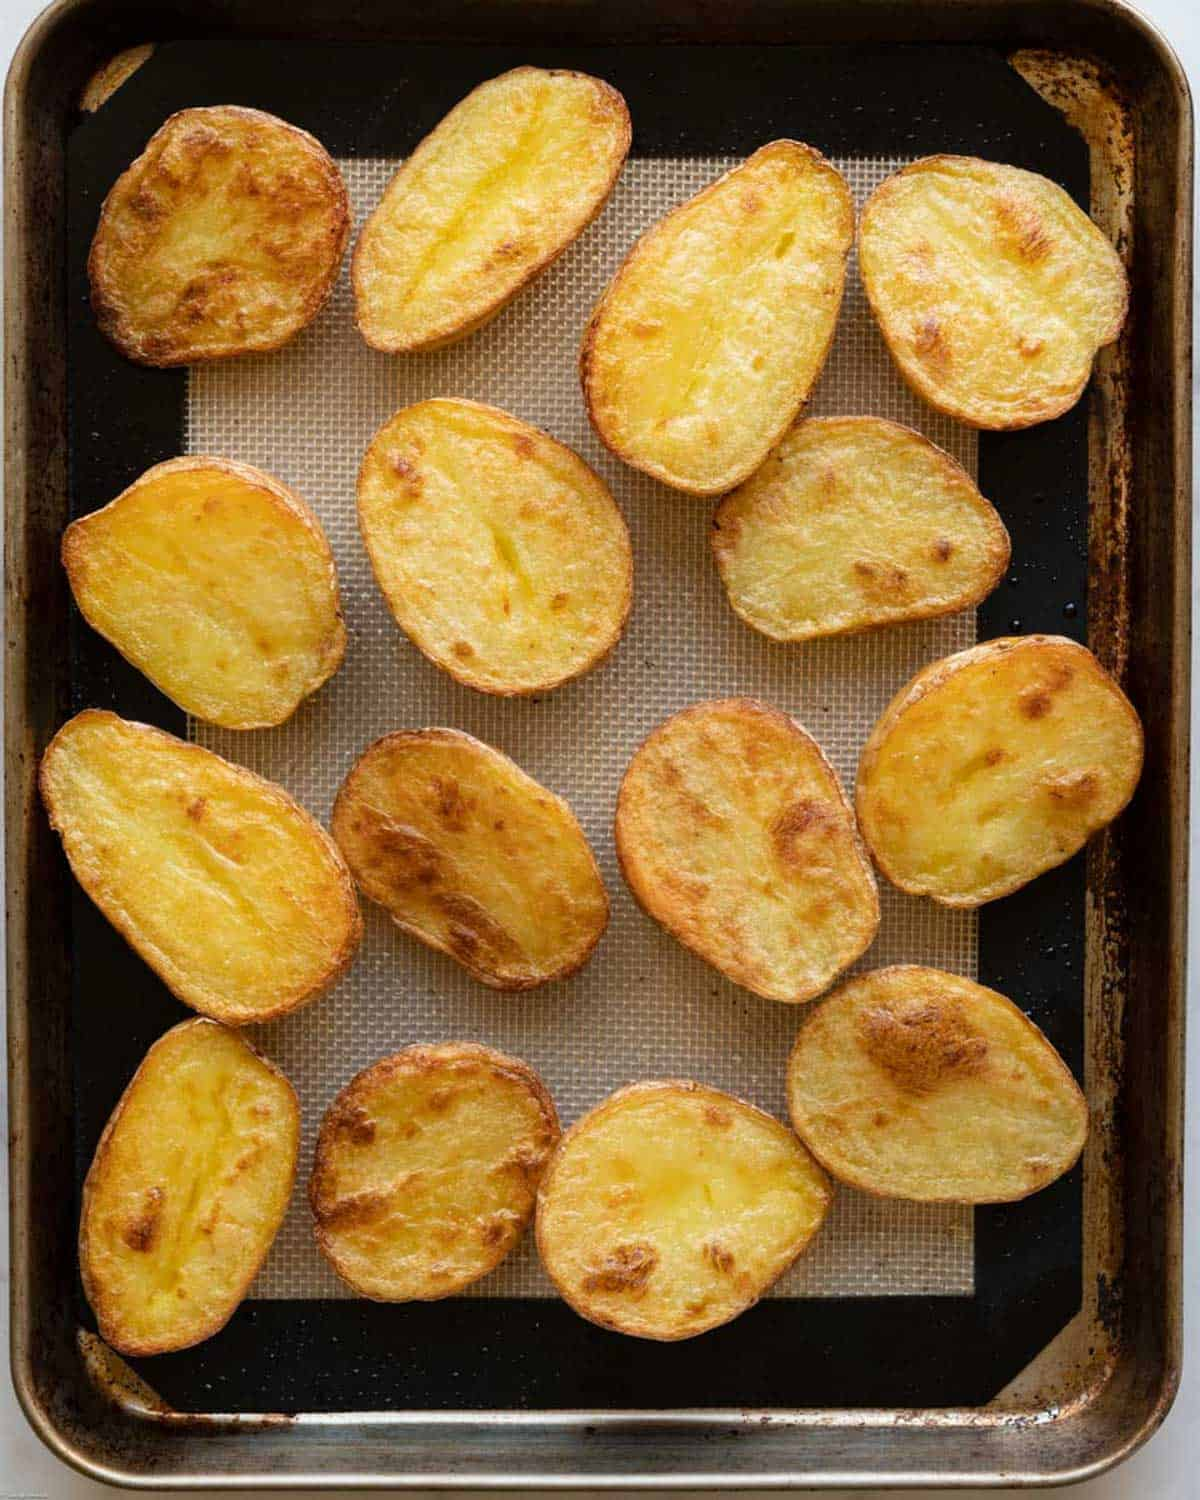 Sliced, crispy, and golden brown roasted potatoes.